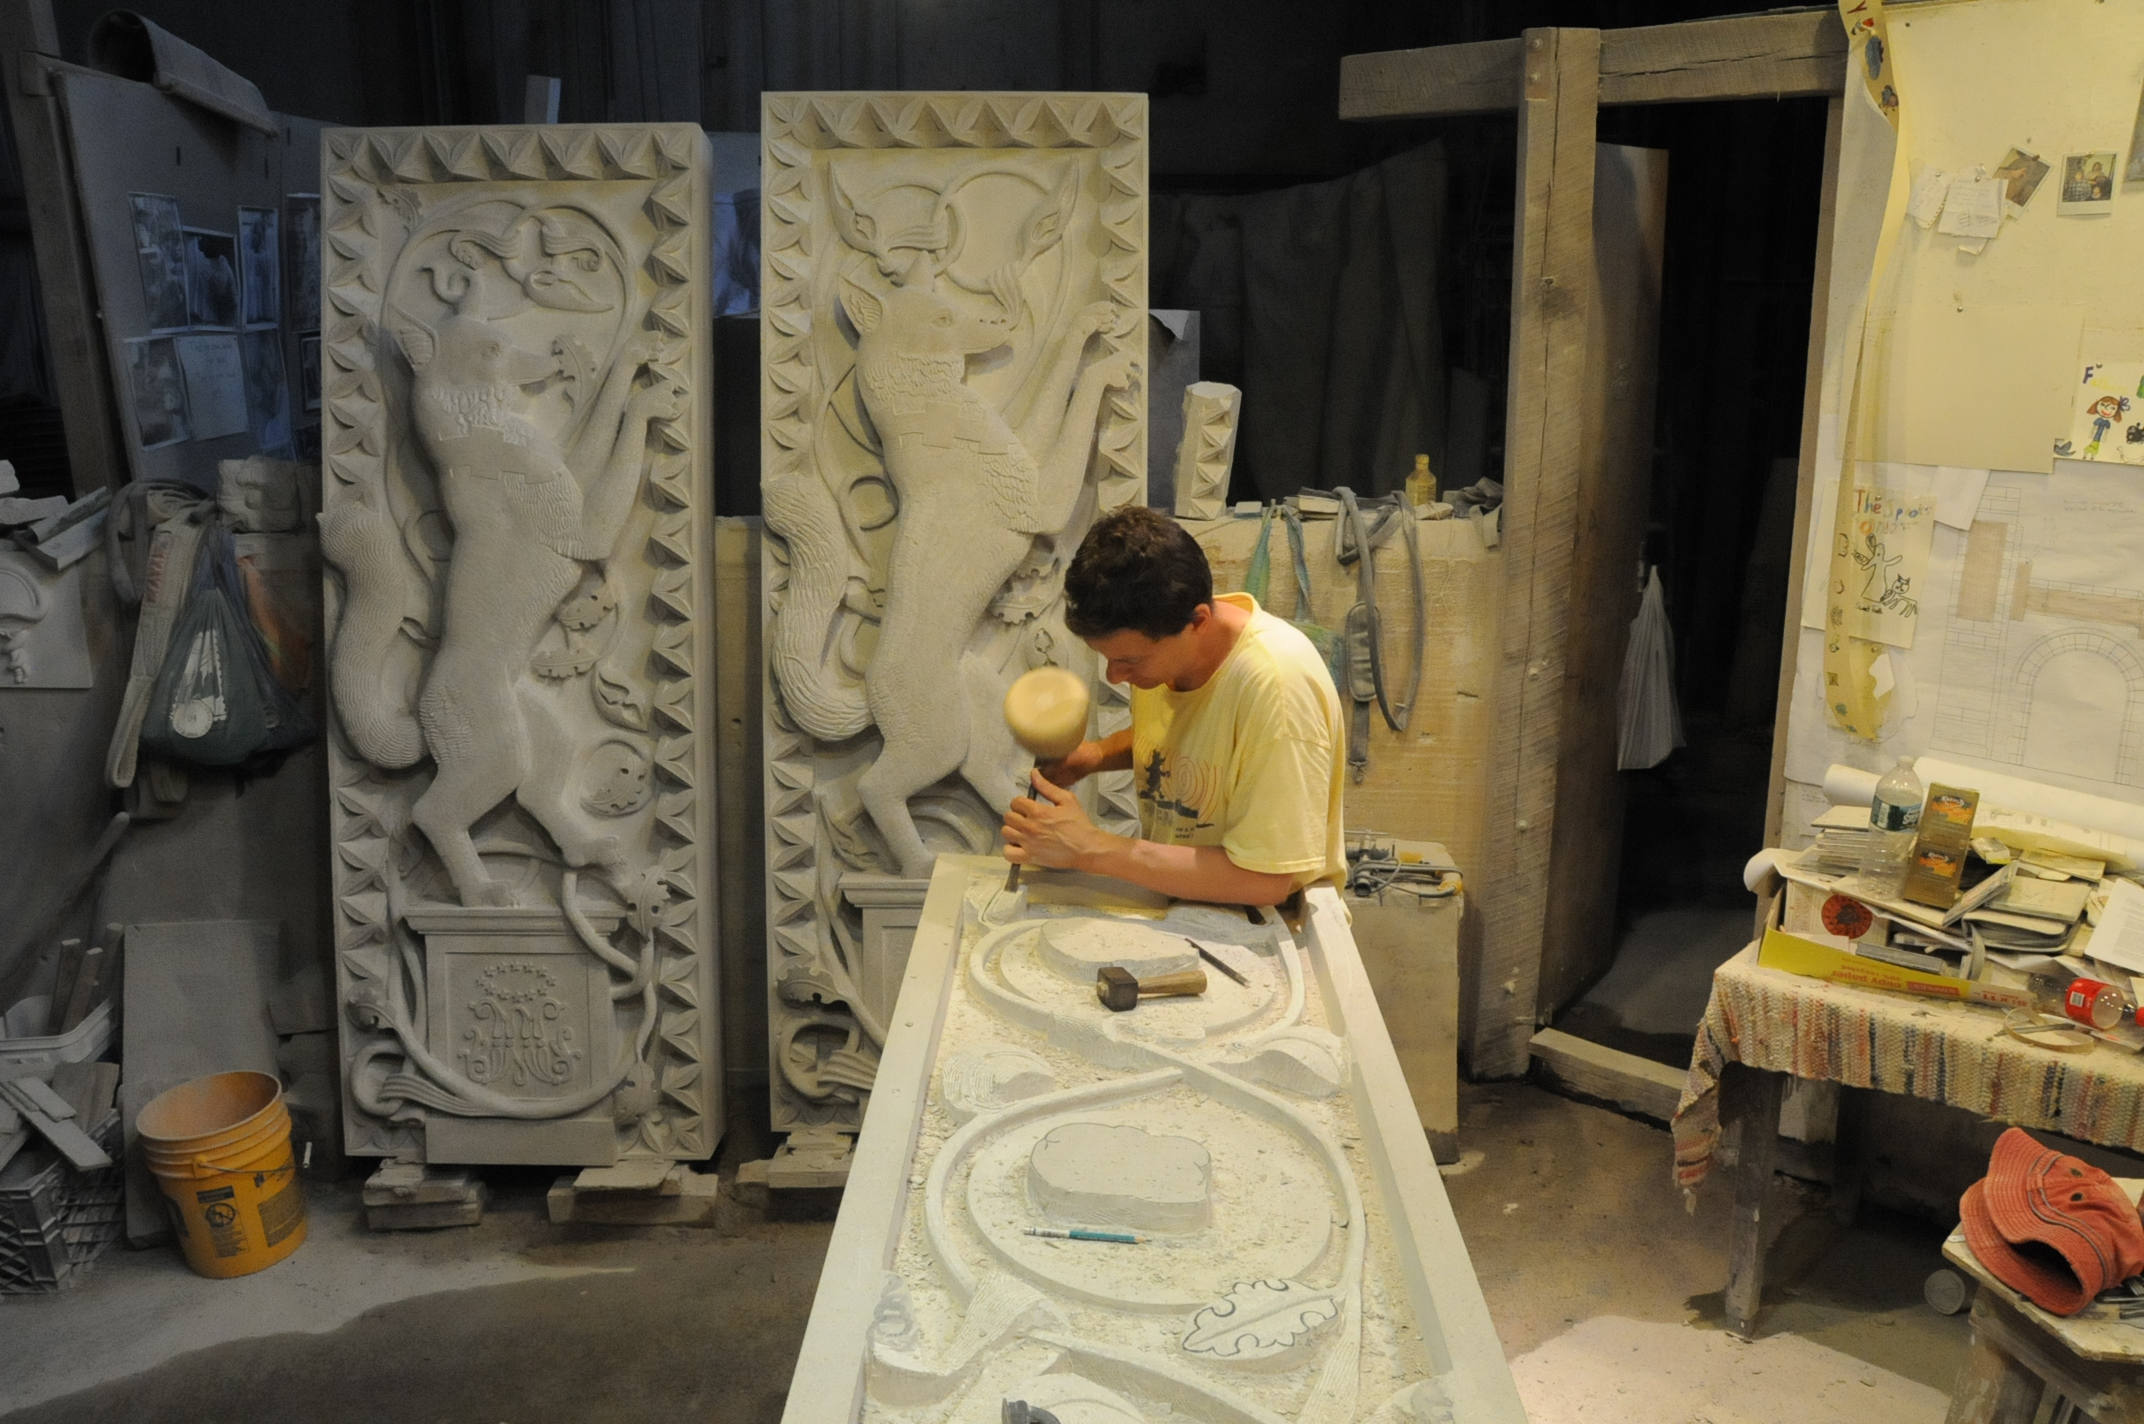 NYCxDesign 2019 The Precious Craft in Focus Festival - Stone Sculpting nycxdesign NYCxDesign 2019: The Precious Craft in Focus Festival NYCxDesign 2019 The Precious Craft in Focus Festival Stone Sculpting